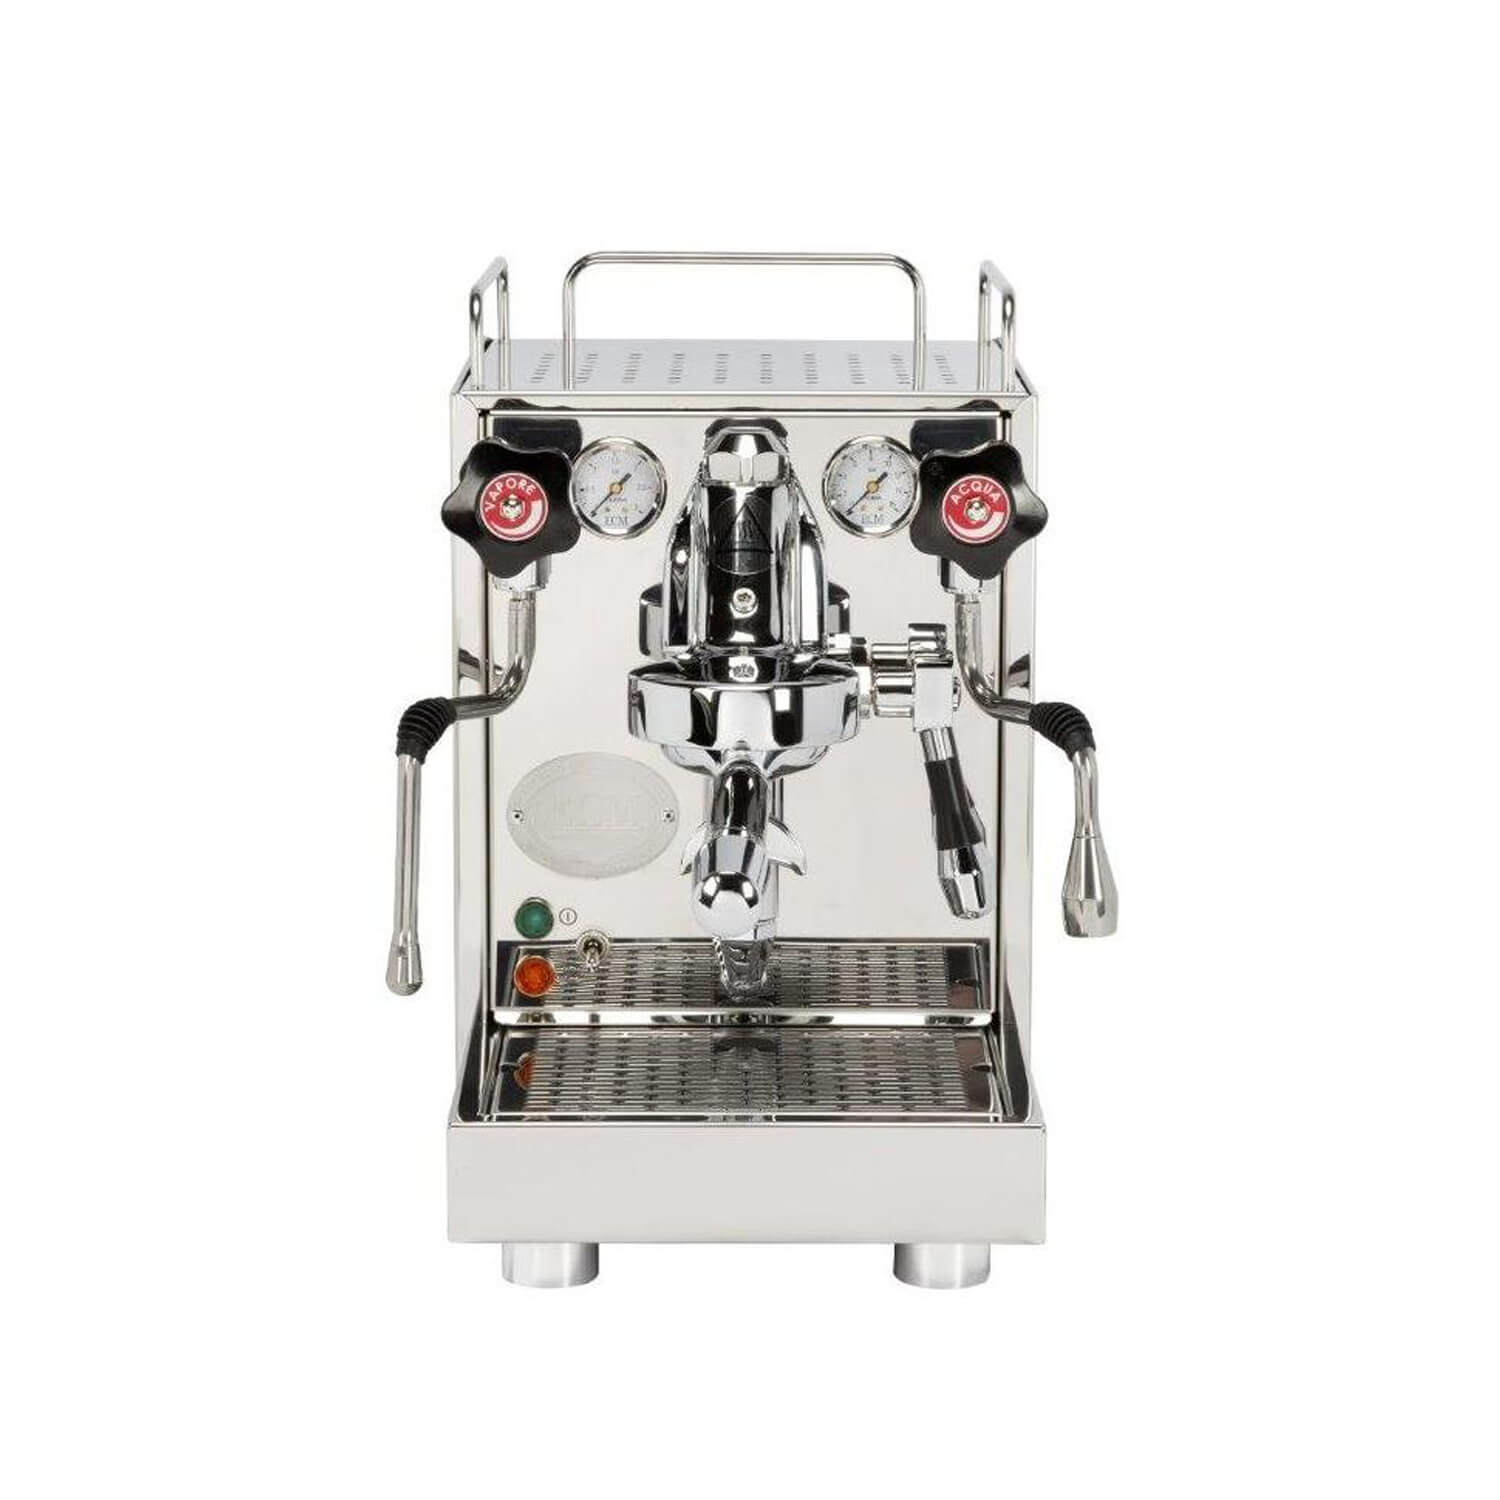 ECM - Espressomachine - Mechanika V Slim E82045